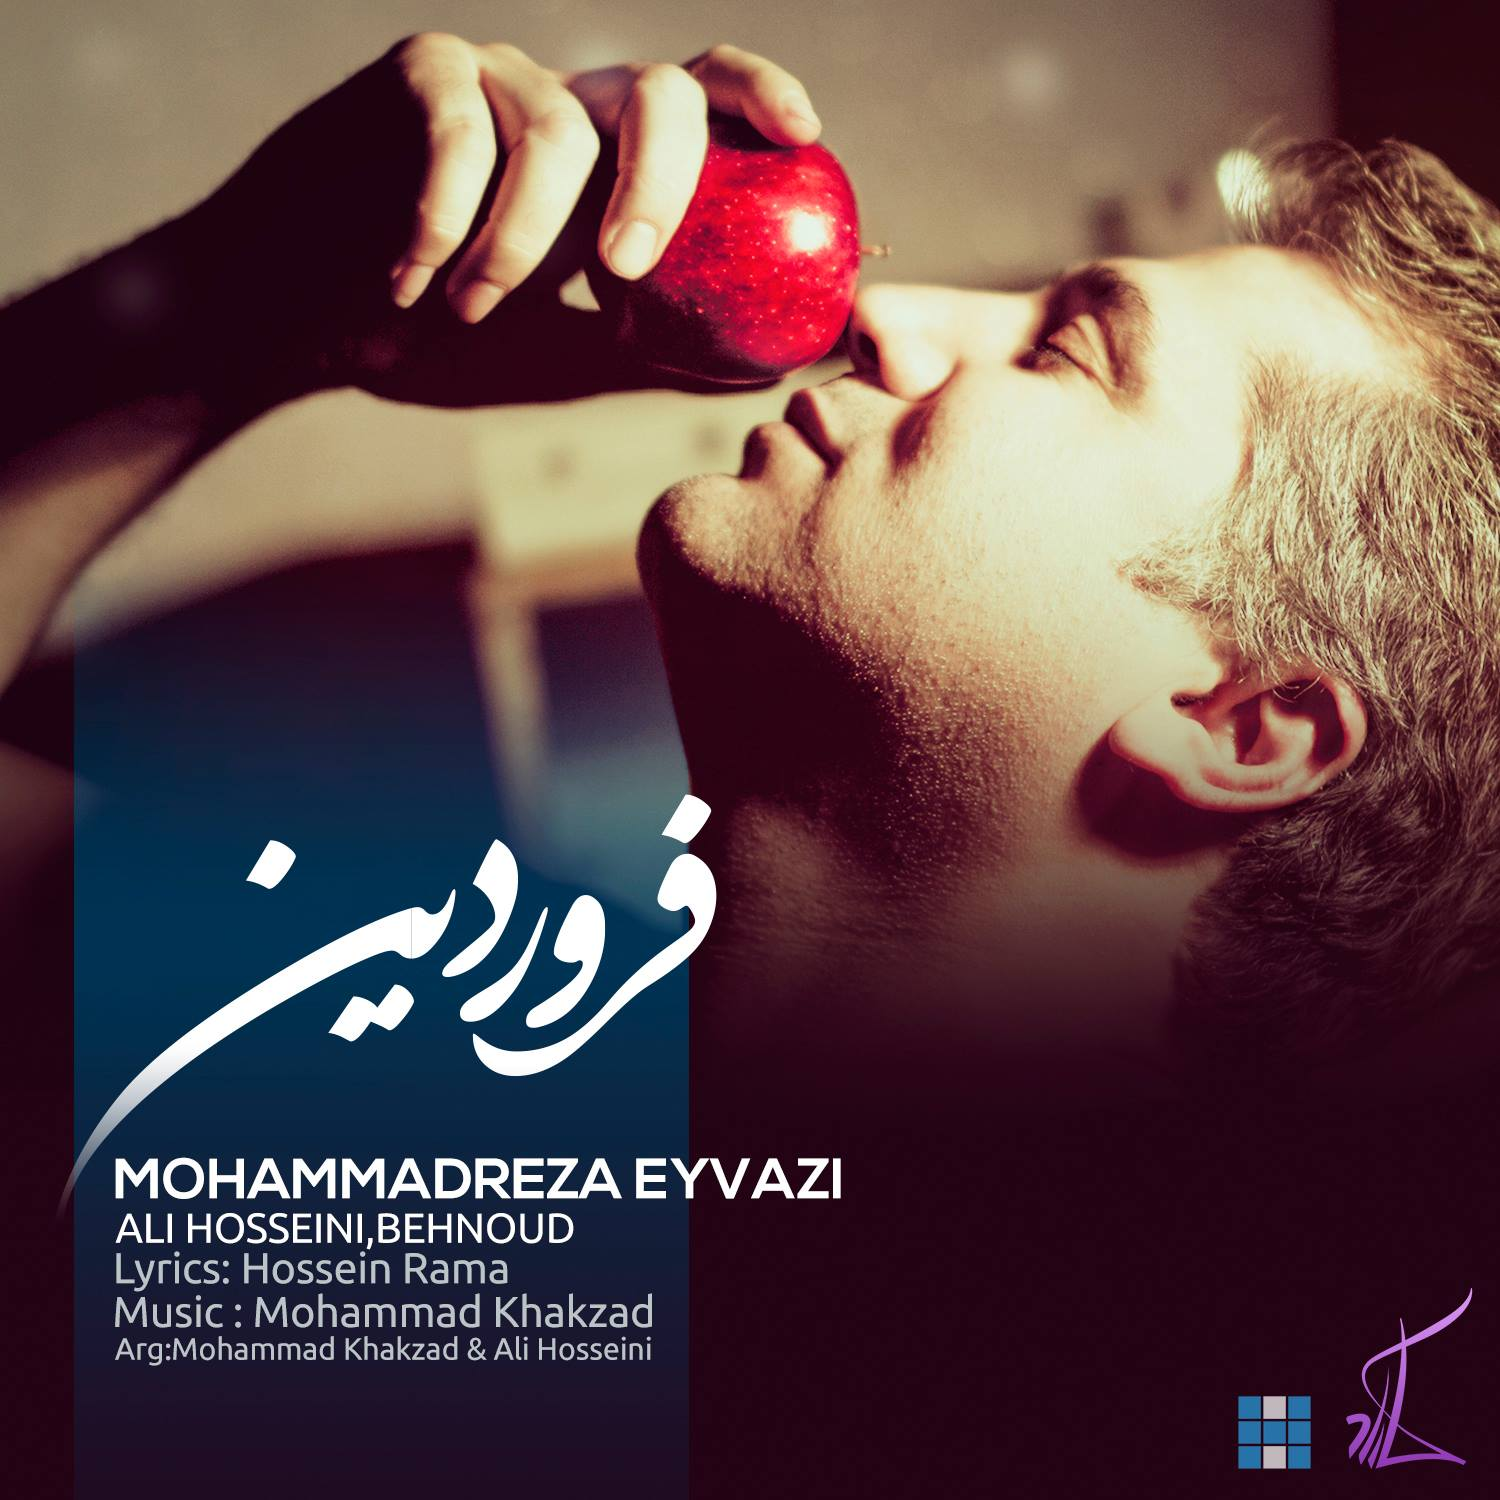 http://dl.247-365.ir/mp3/93/track/Mohammad%20Reza%20Eyvazi%20-%20Farvardin%20(Ft%20Ali%20Hosseini%20and%20Behnoud).jpg